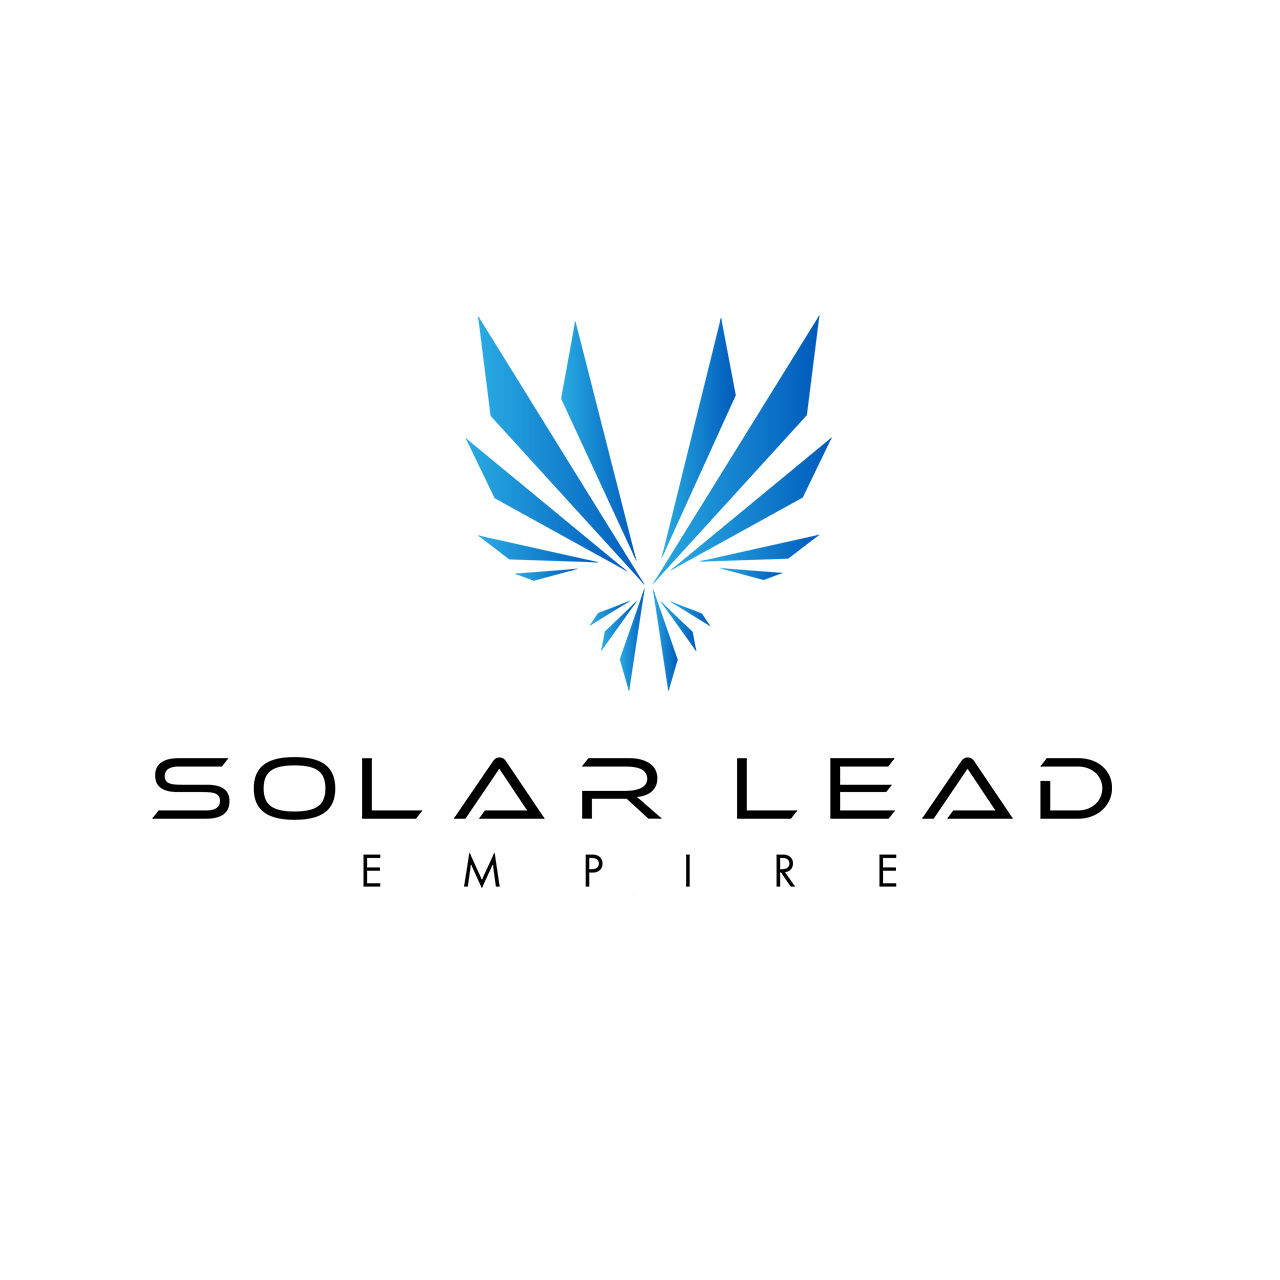 Solar Lead Empire image